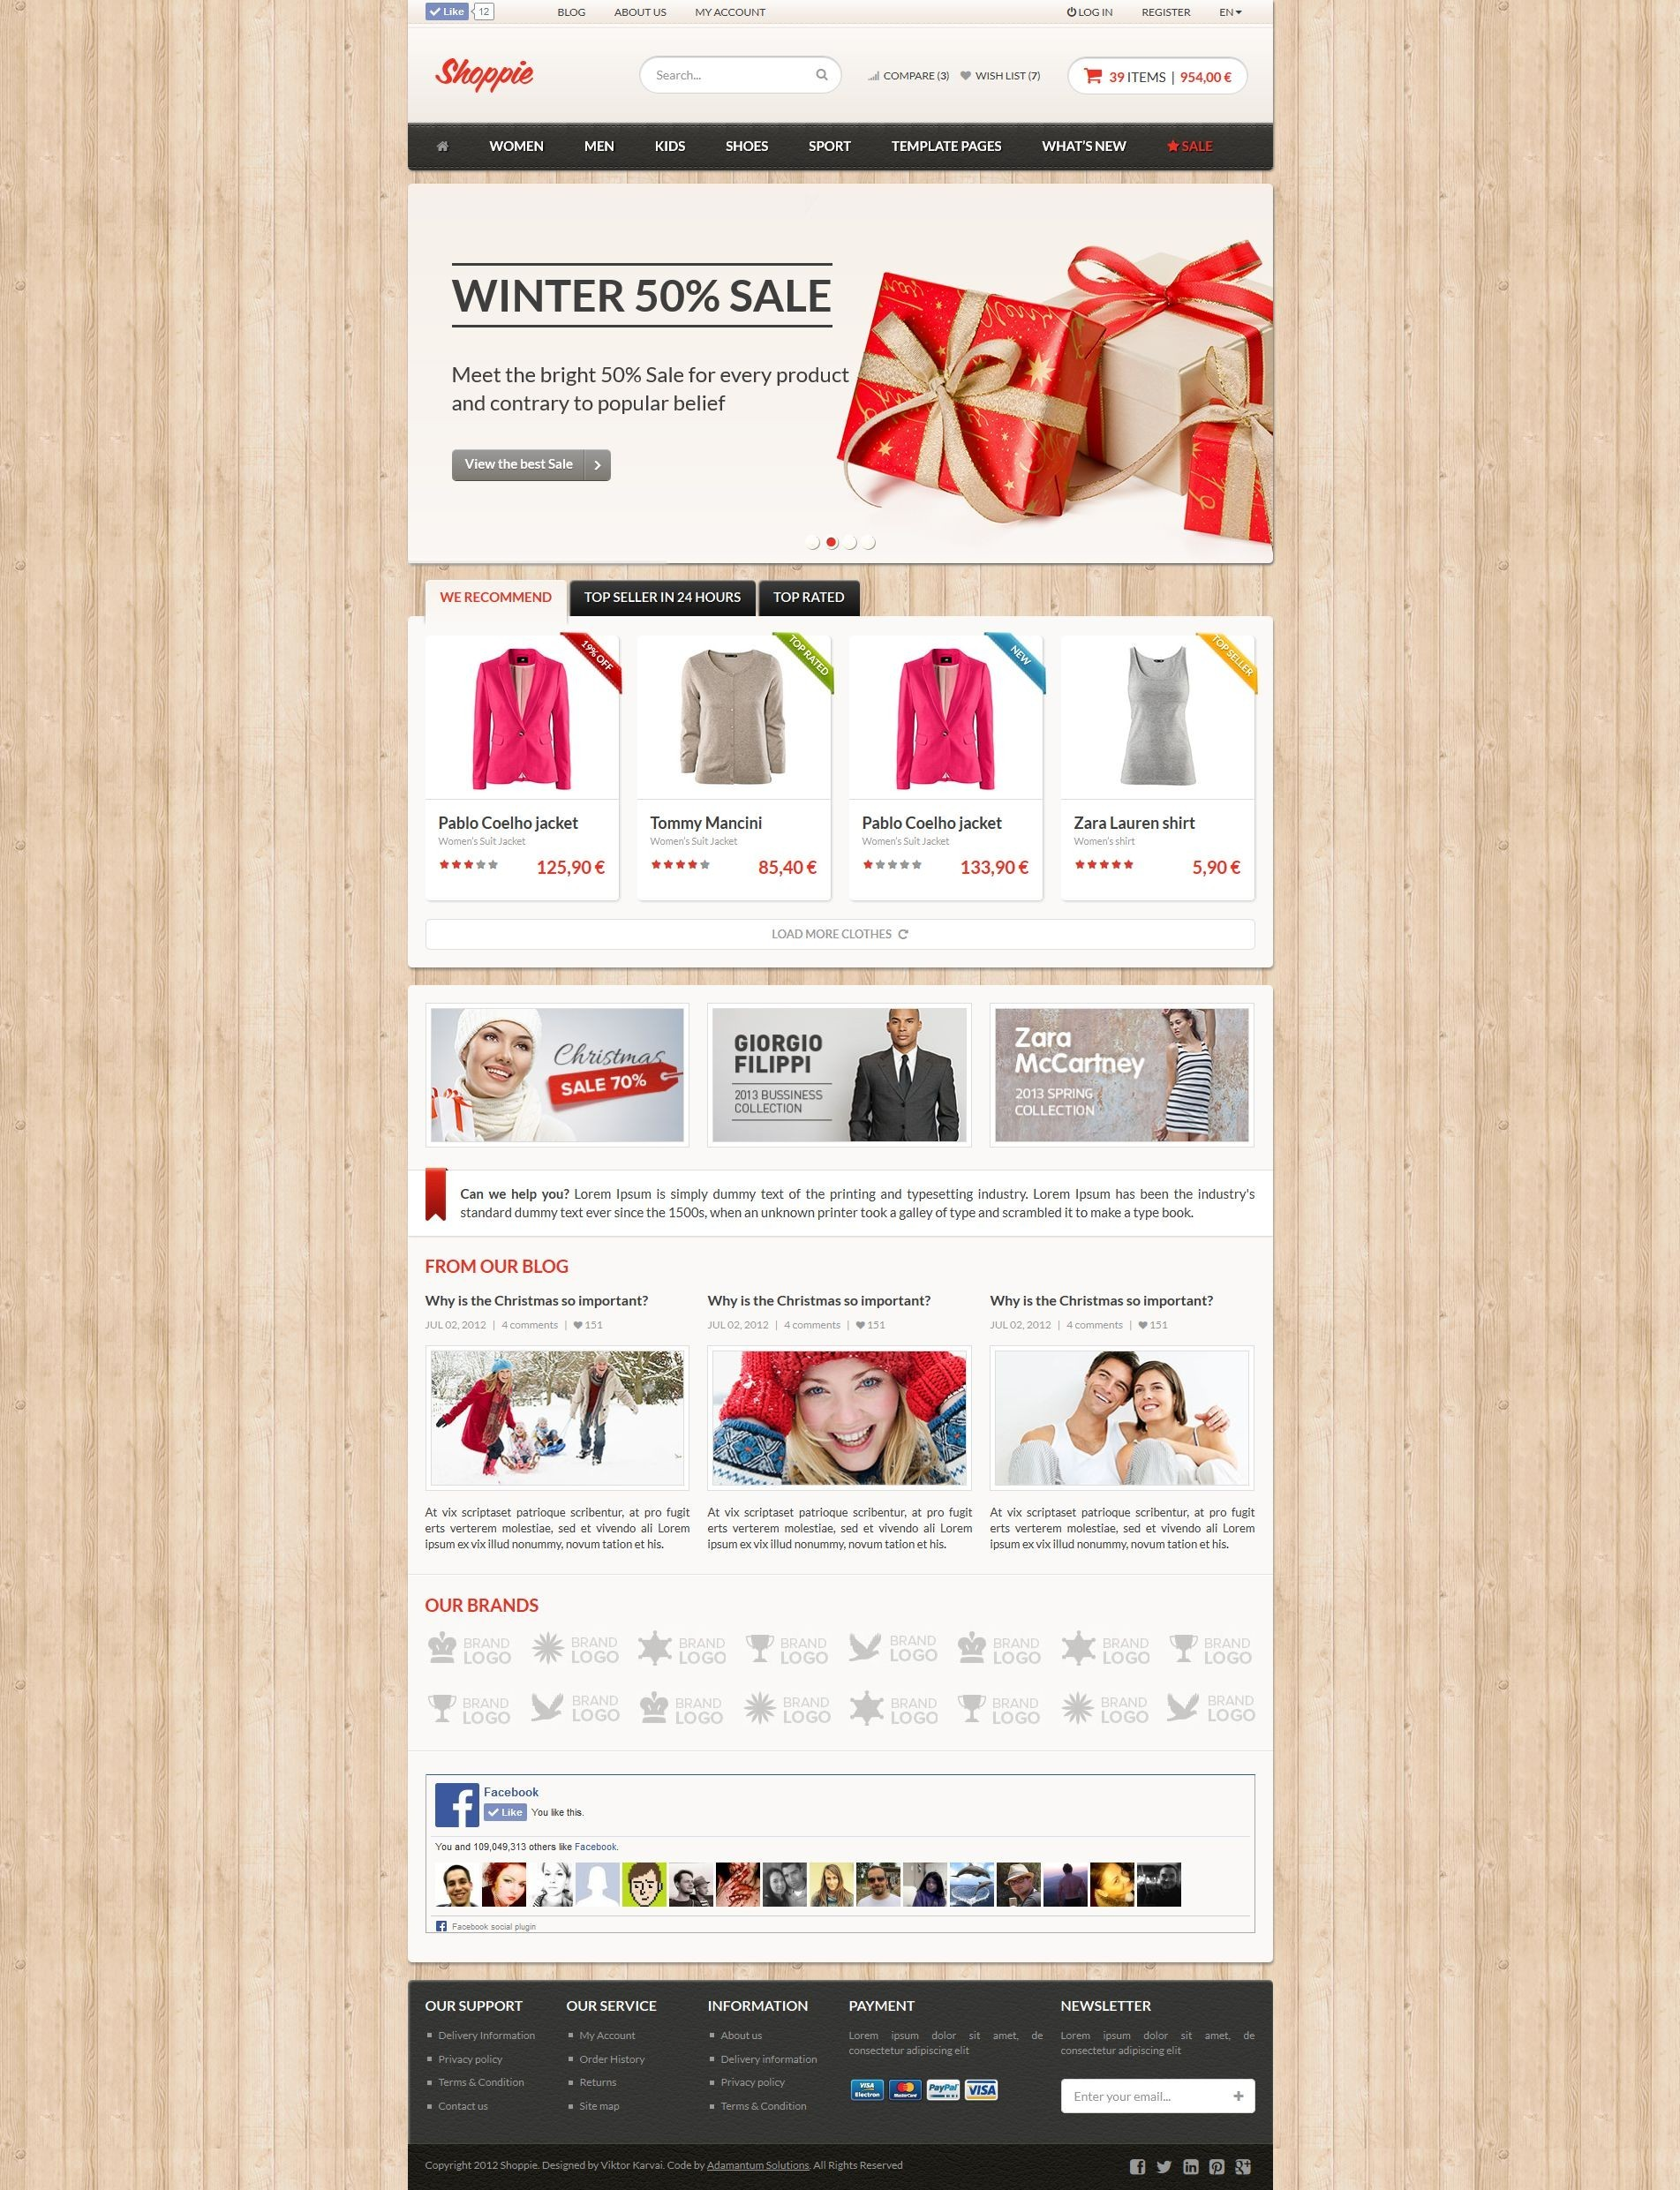 Shoppie - Responsive E-Shop HTML5 Template